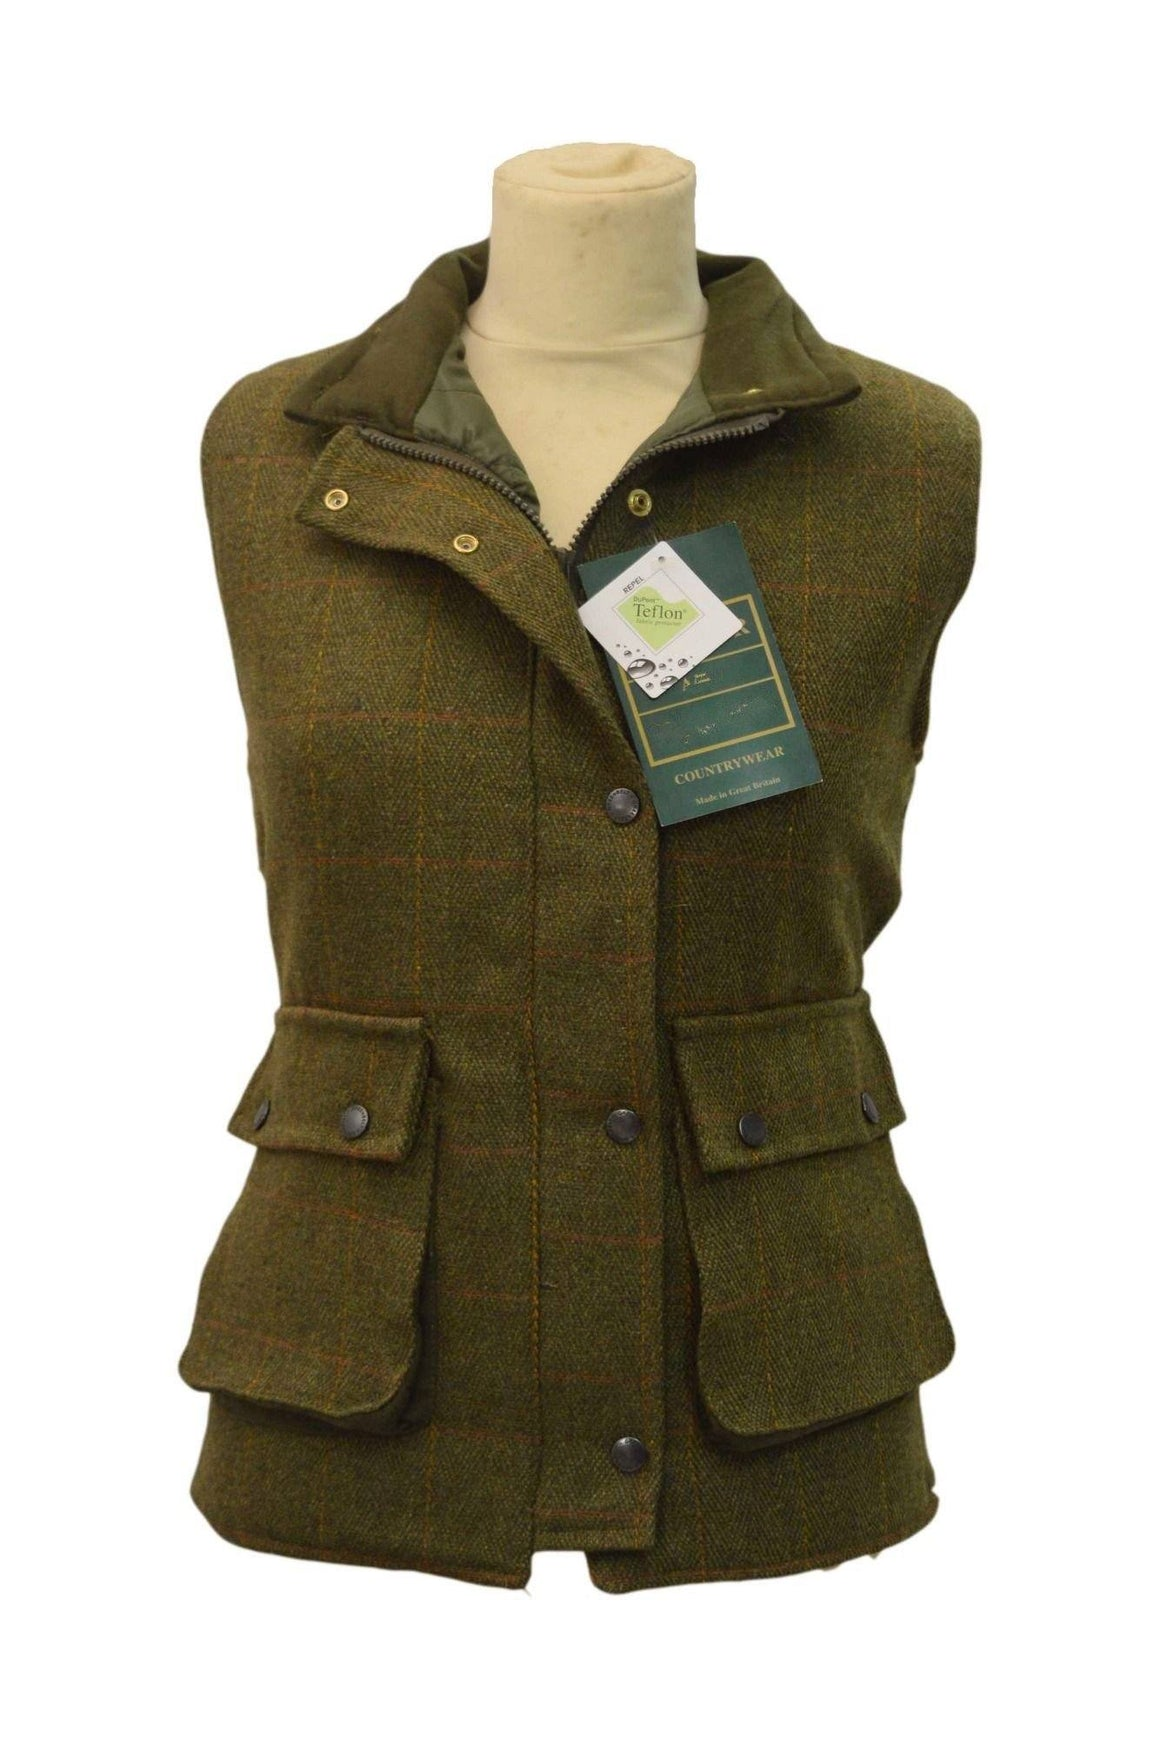 Tweed Country Ladies Gillet, vest, mørk grøn